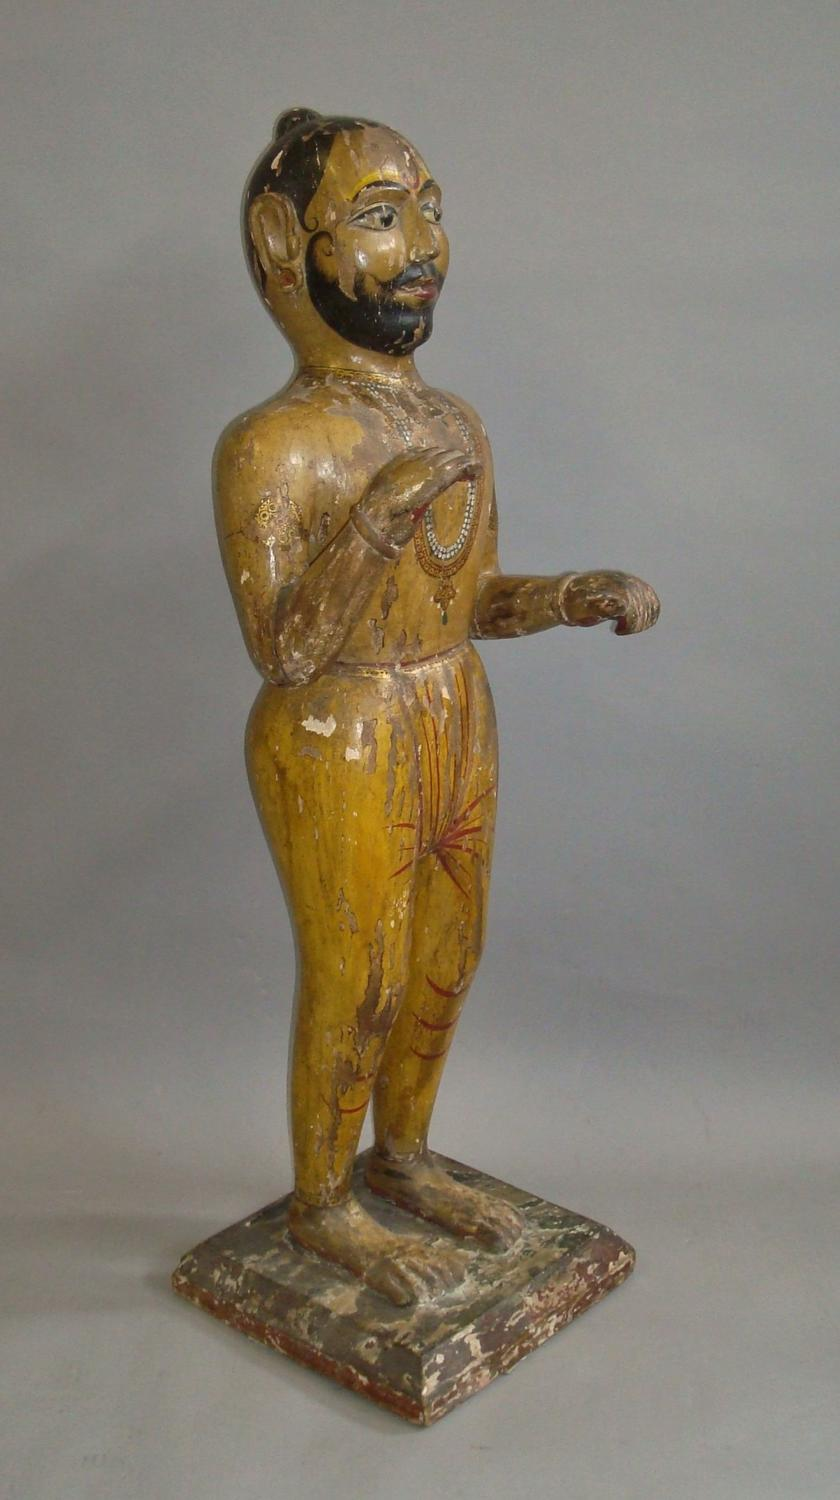 19th century carved Indian figure